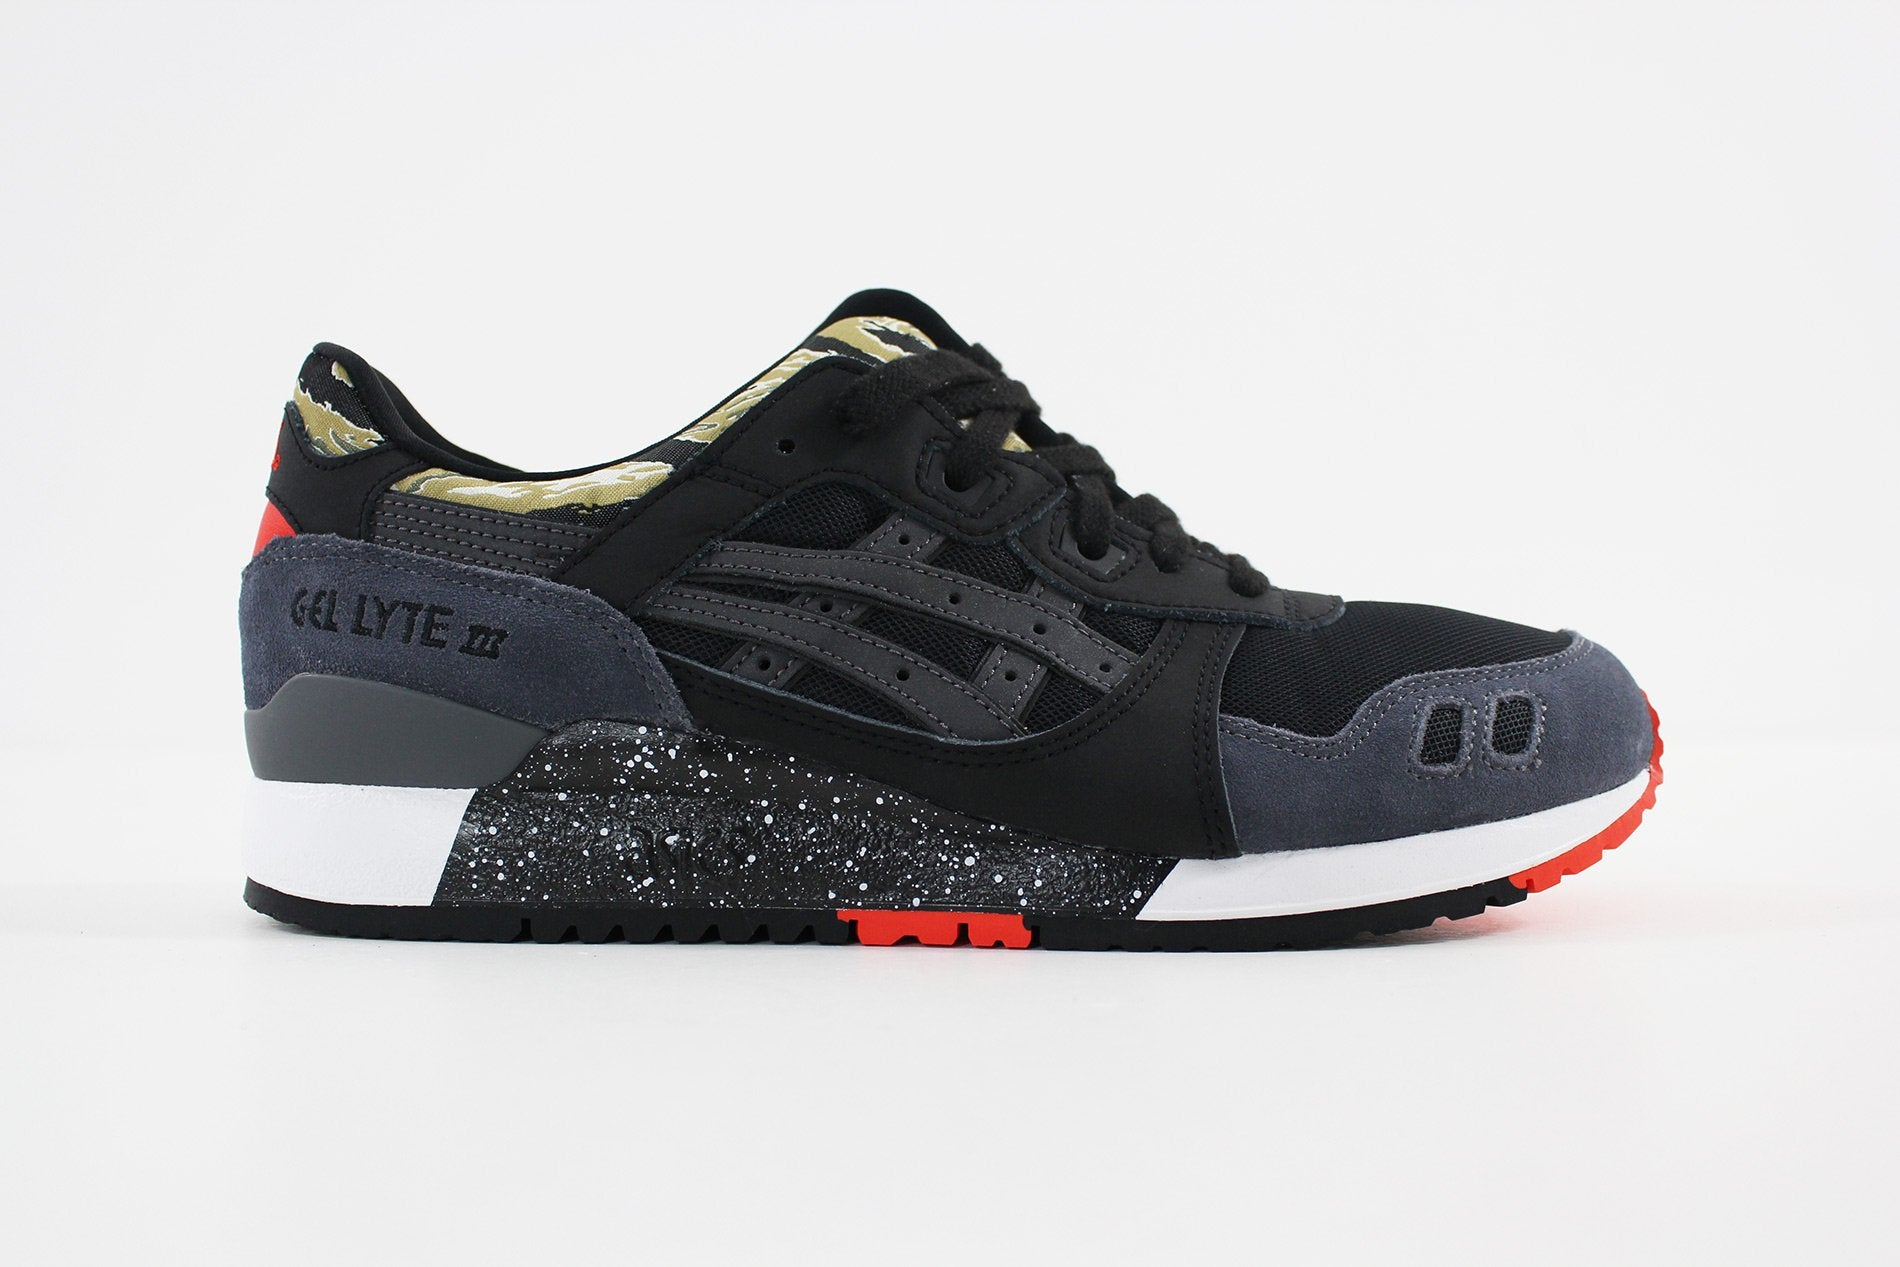 Asics GEL LYTE III (BLACKBLACK) H7Y0L 9090 Sneakerworld